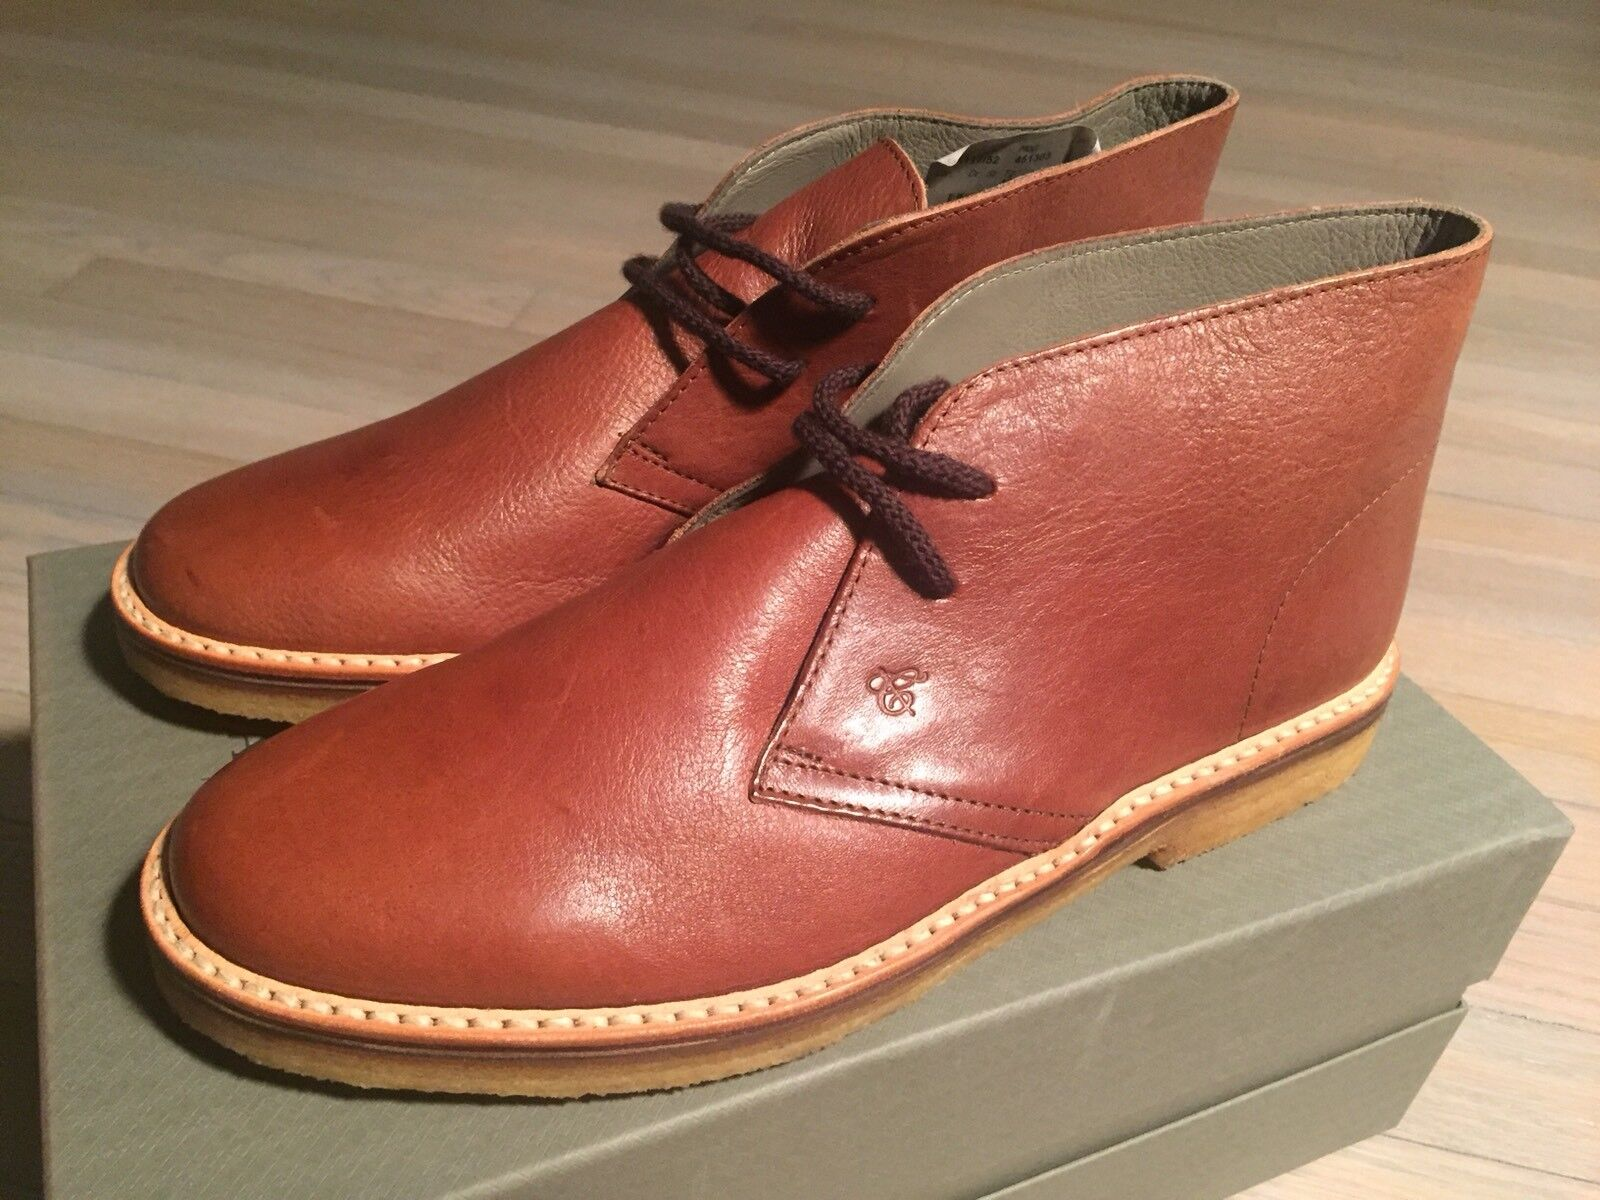 750  Canali Light Brown Leather Chukka Boots Size US 10.5 Made in